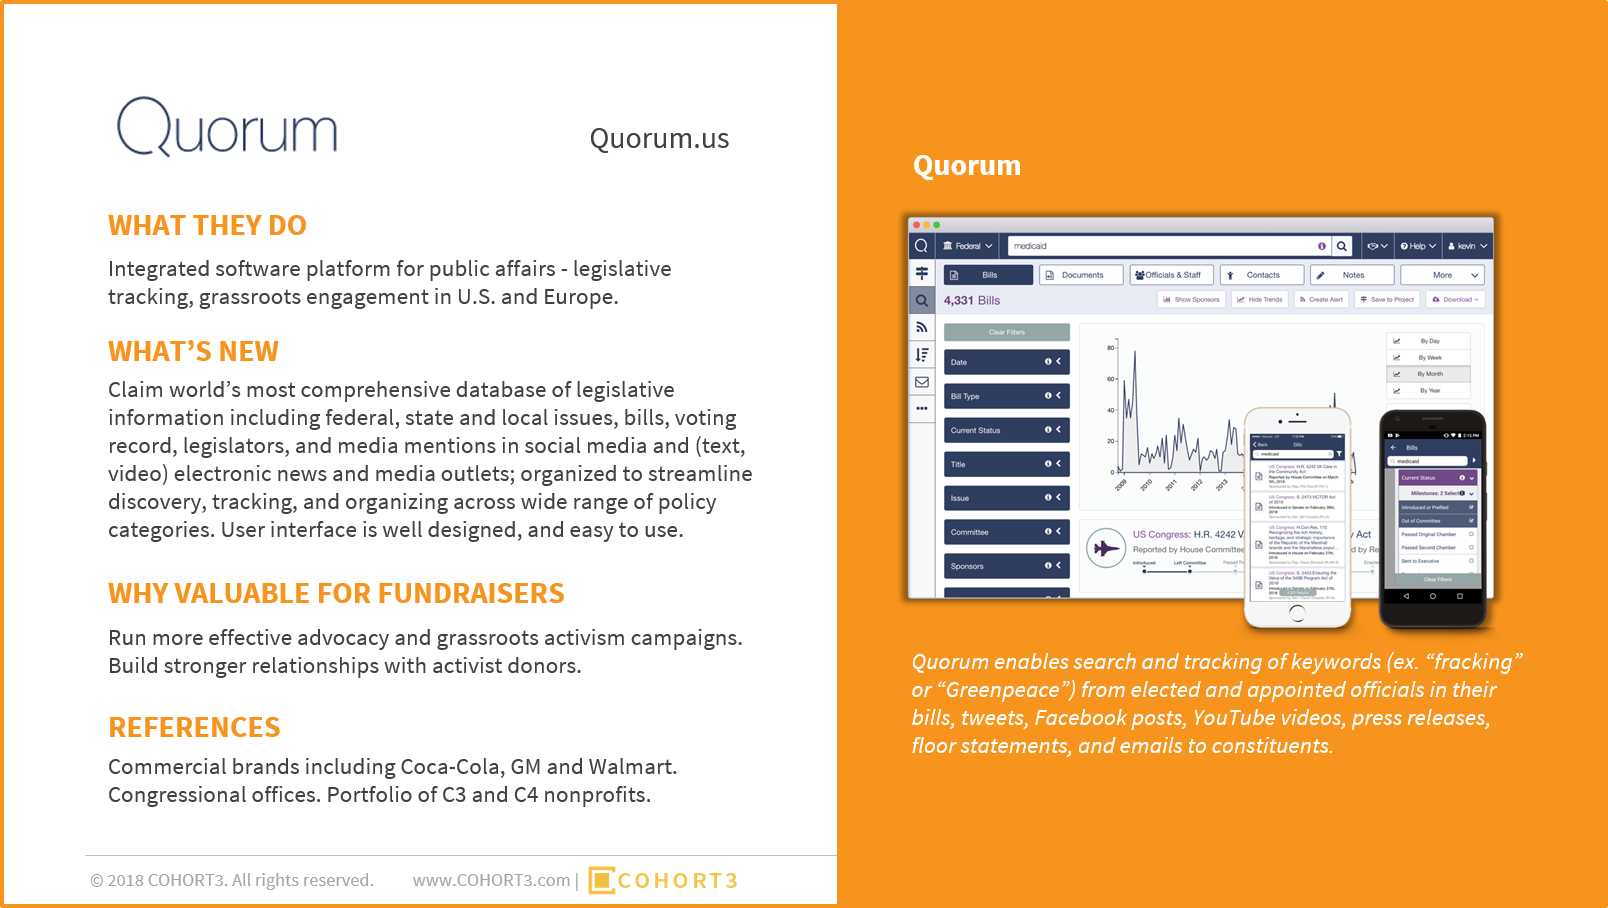 The new report from COHORT3 highlights the Top 5 most innovative technology products for fundraisers chosen from 125 exhibitors at the 2018 NTEN Conference. Download the report to learn more about Quorum (above) and the other innovators.